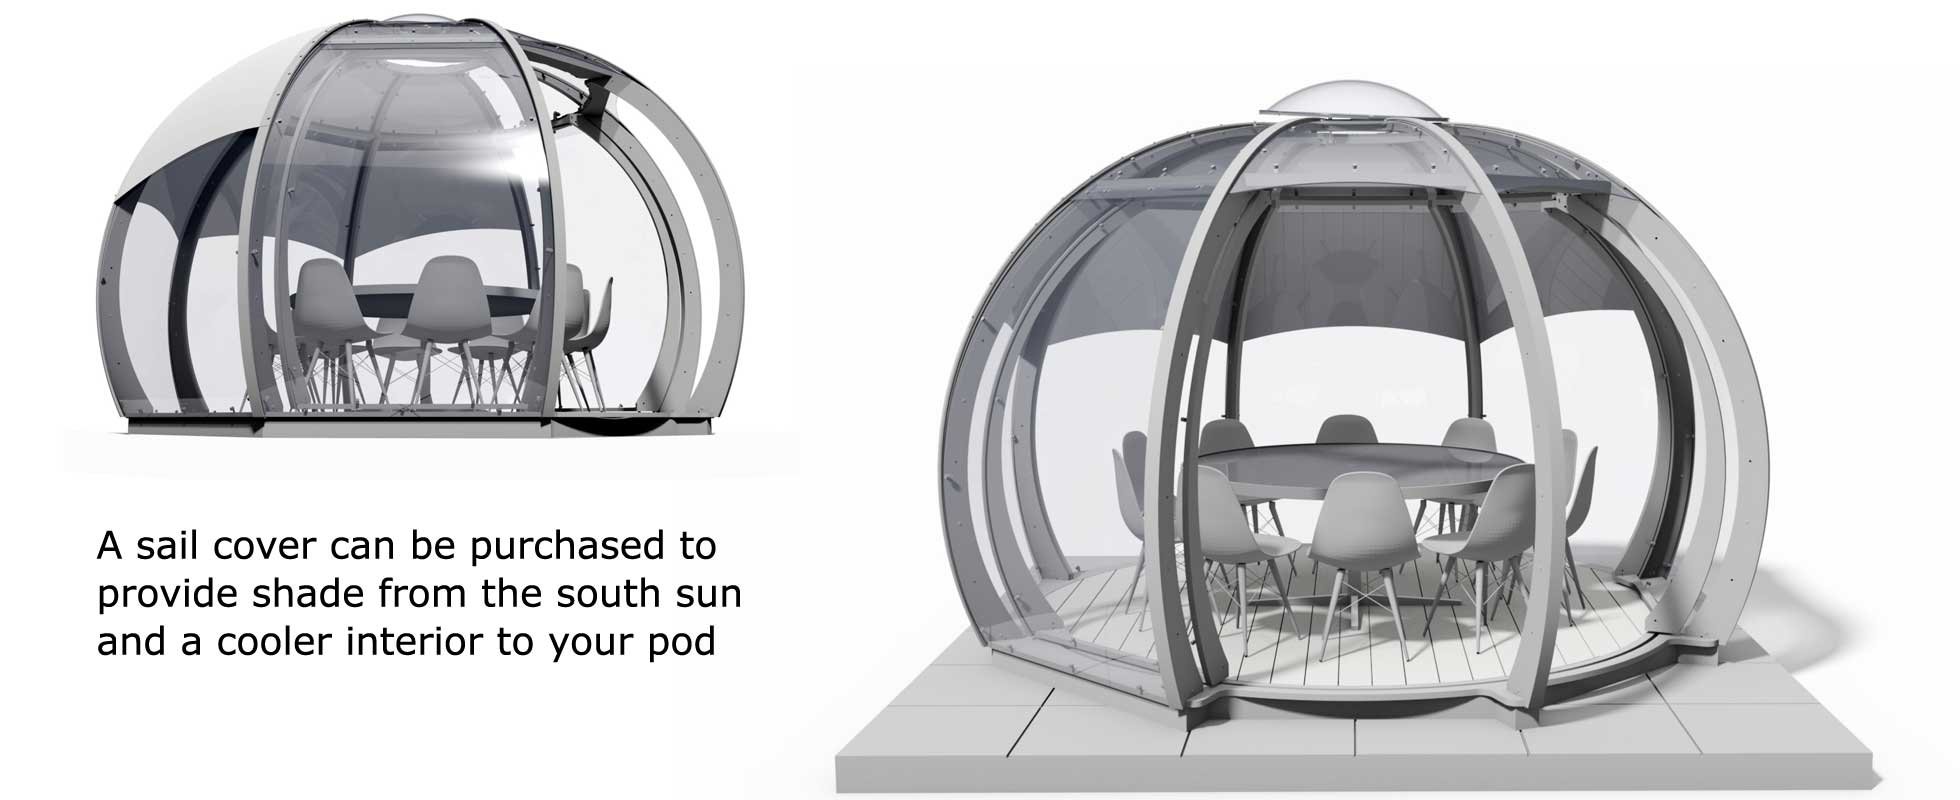 Two 3d renderings to show pod sail covers for sun shade